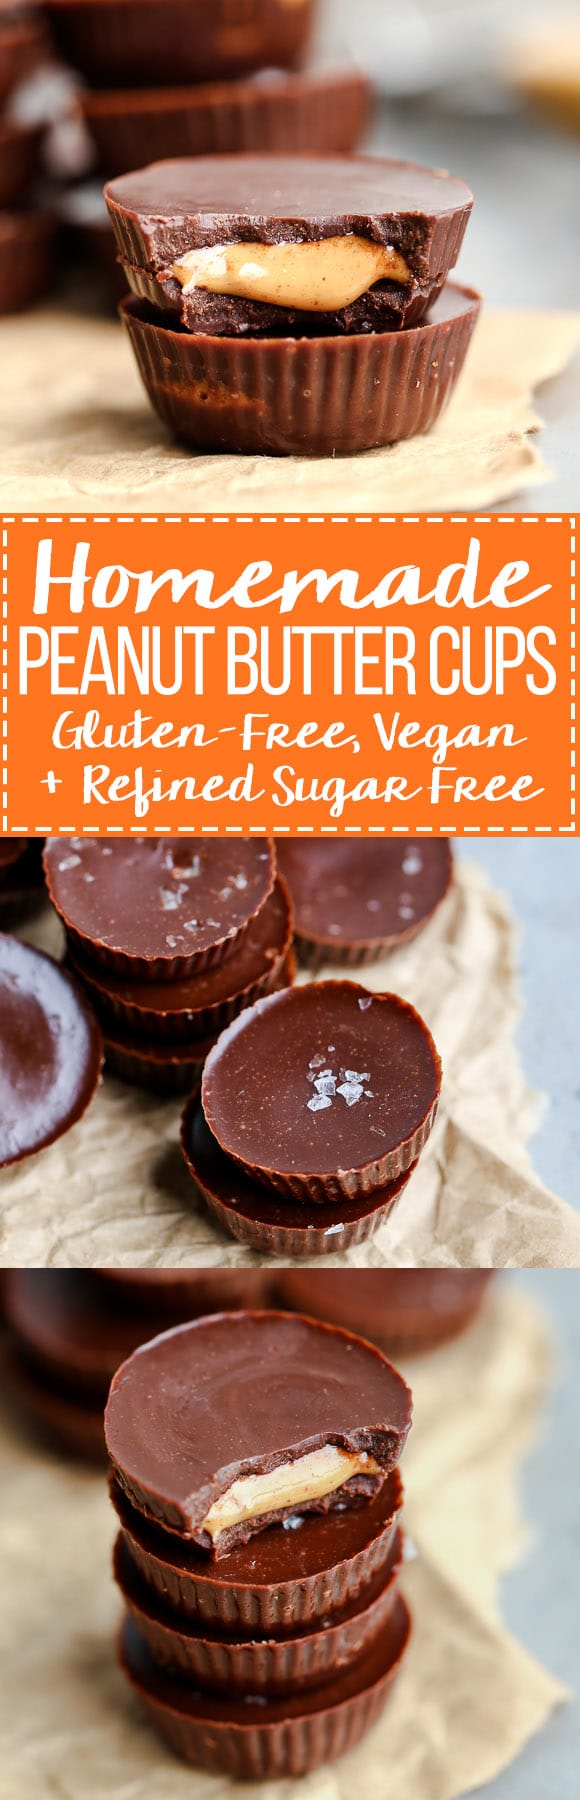 These homemade Peanut Butter Cups are a healthier version of my favorite candy, made with only four ingredients! They are made with a refined sugar-free + vegan homemade chocolate and sprinkled with flaky sea salt.